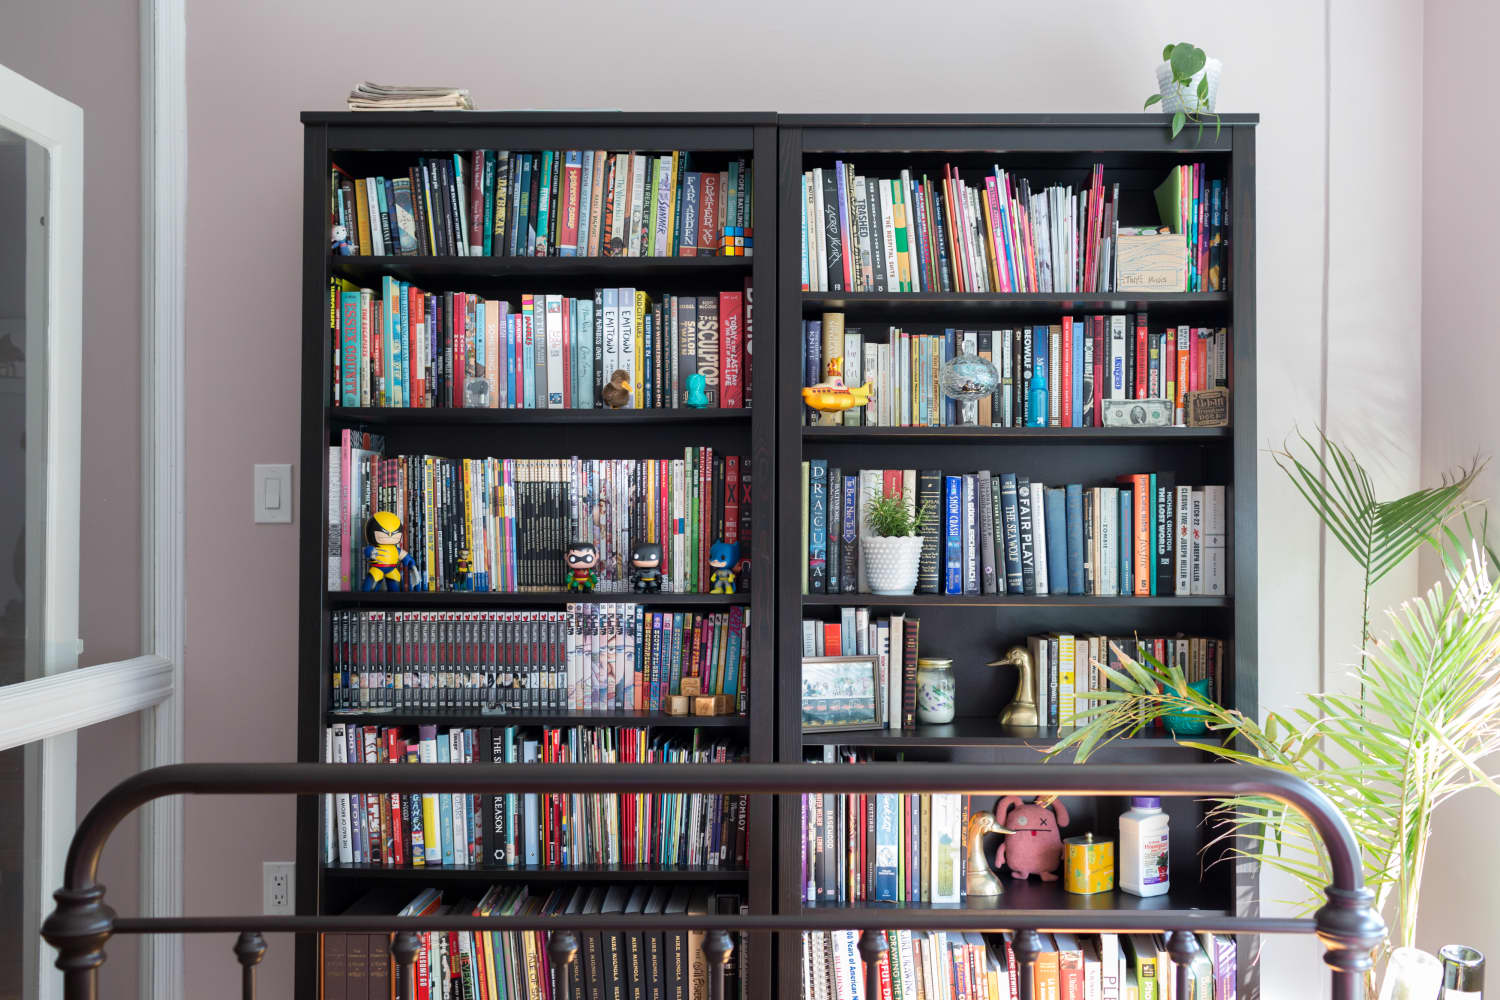 The Best Ways to Organize Books at Home, According to a Librarian